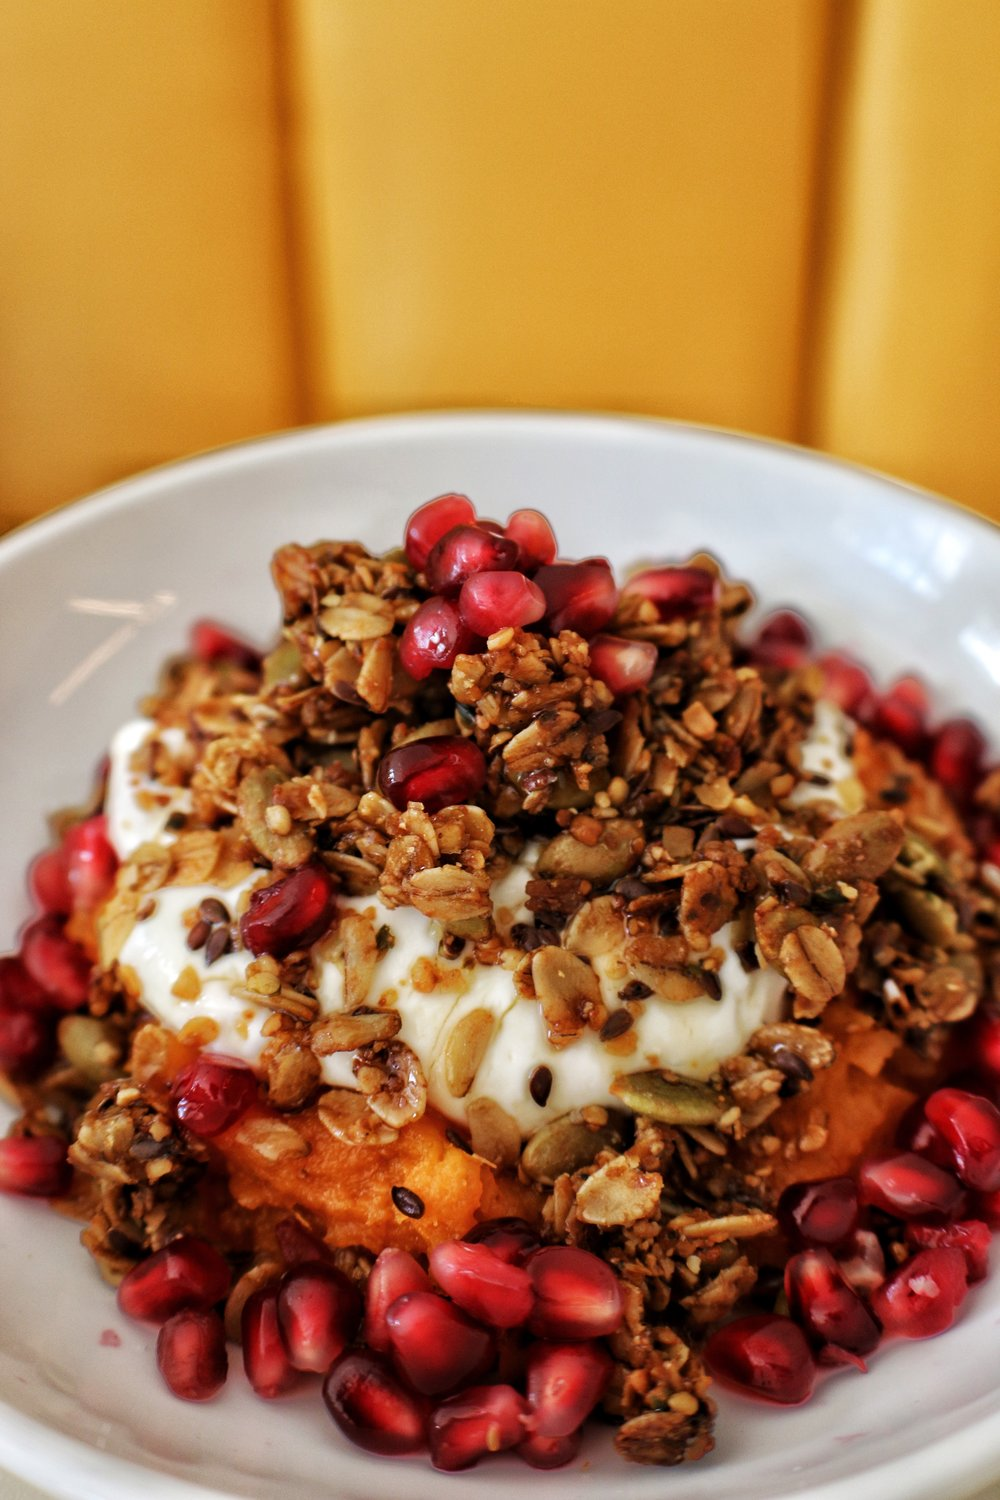 Roasted yam & granola, Flax, millet, quinoa, pumpkin seeds & Greek Yogurt